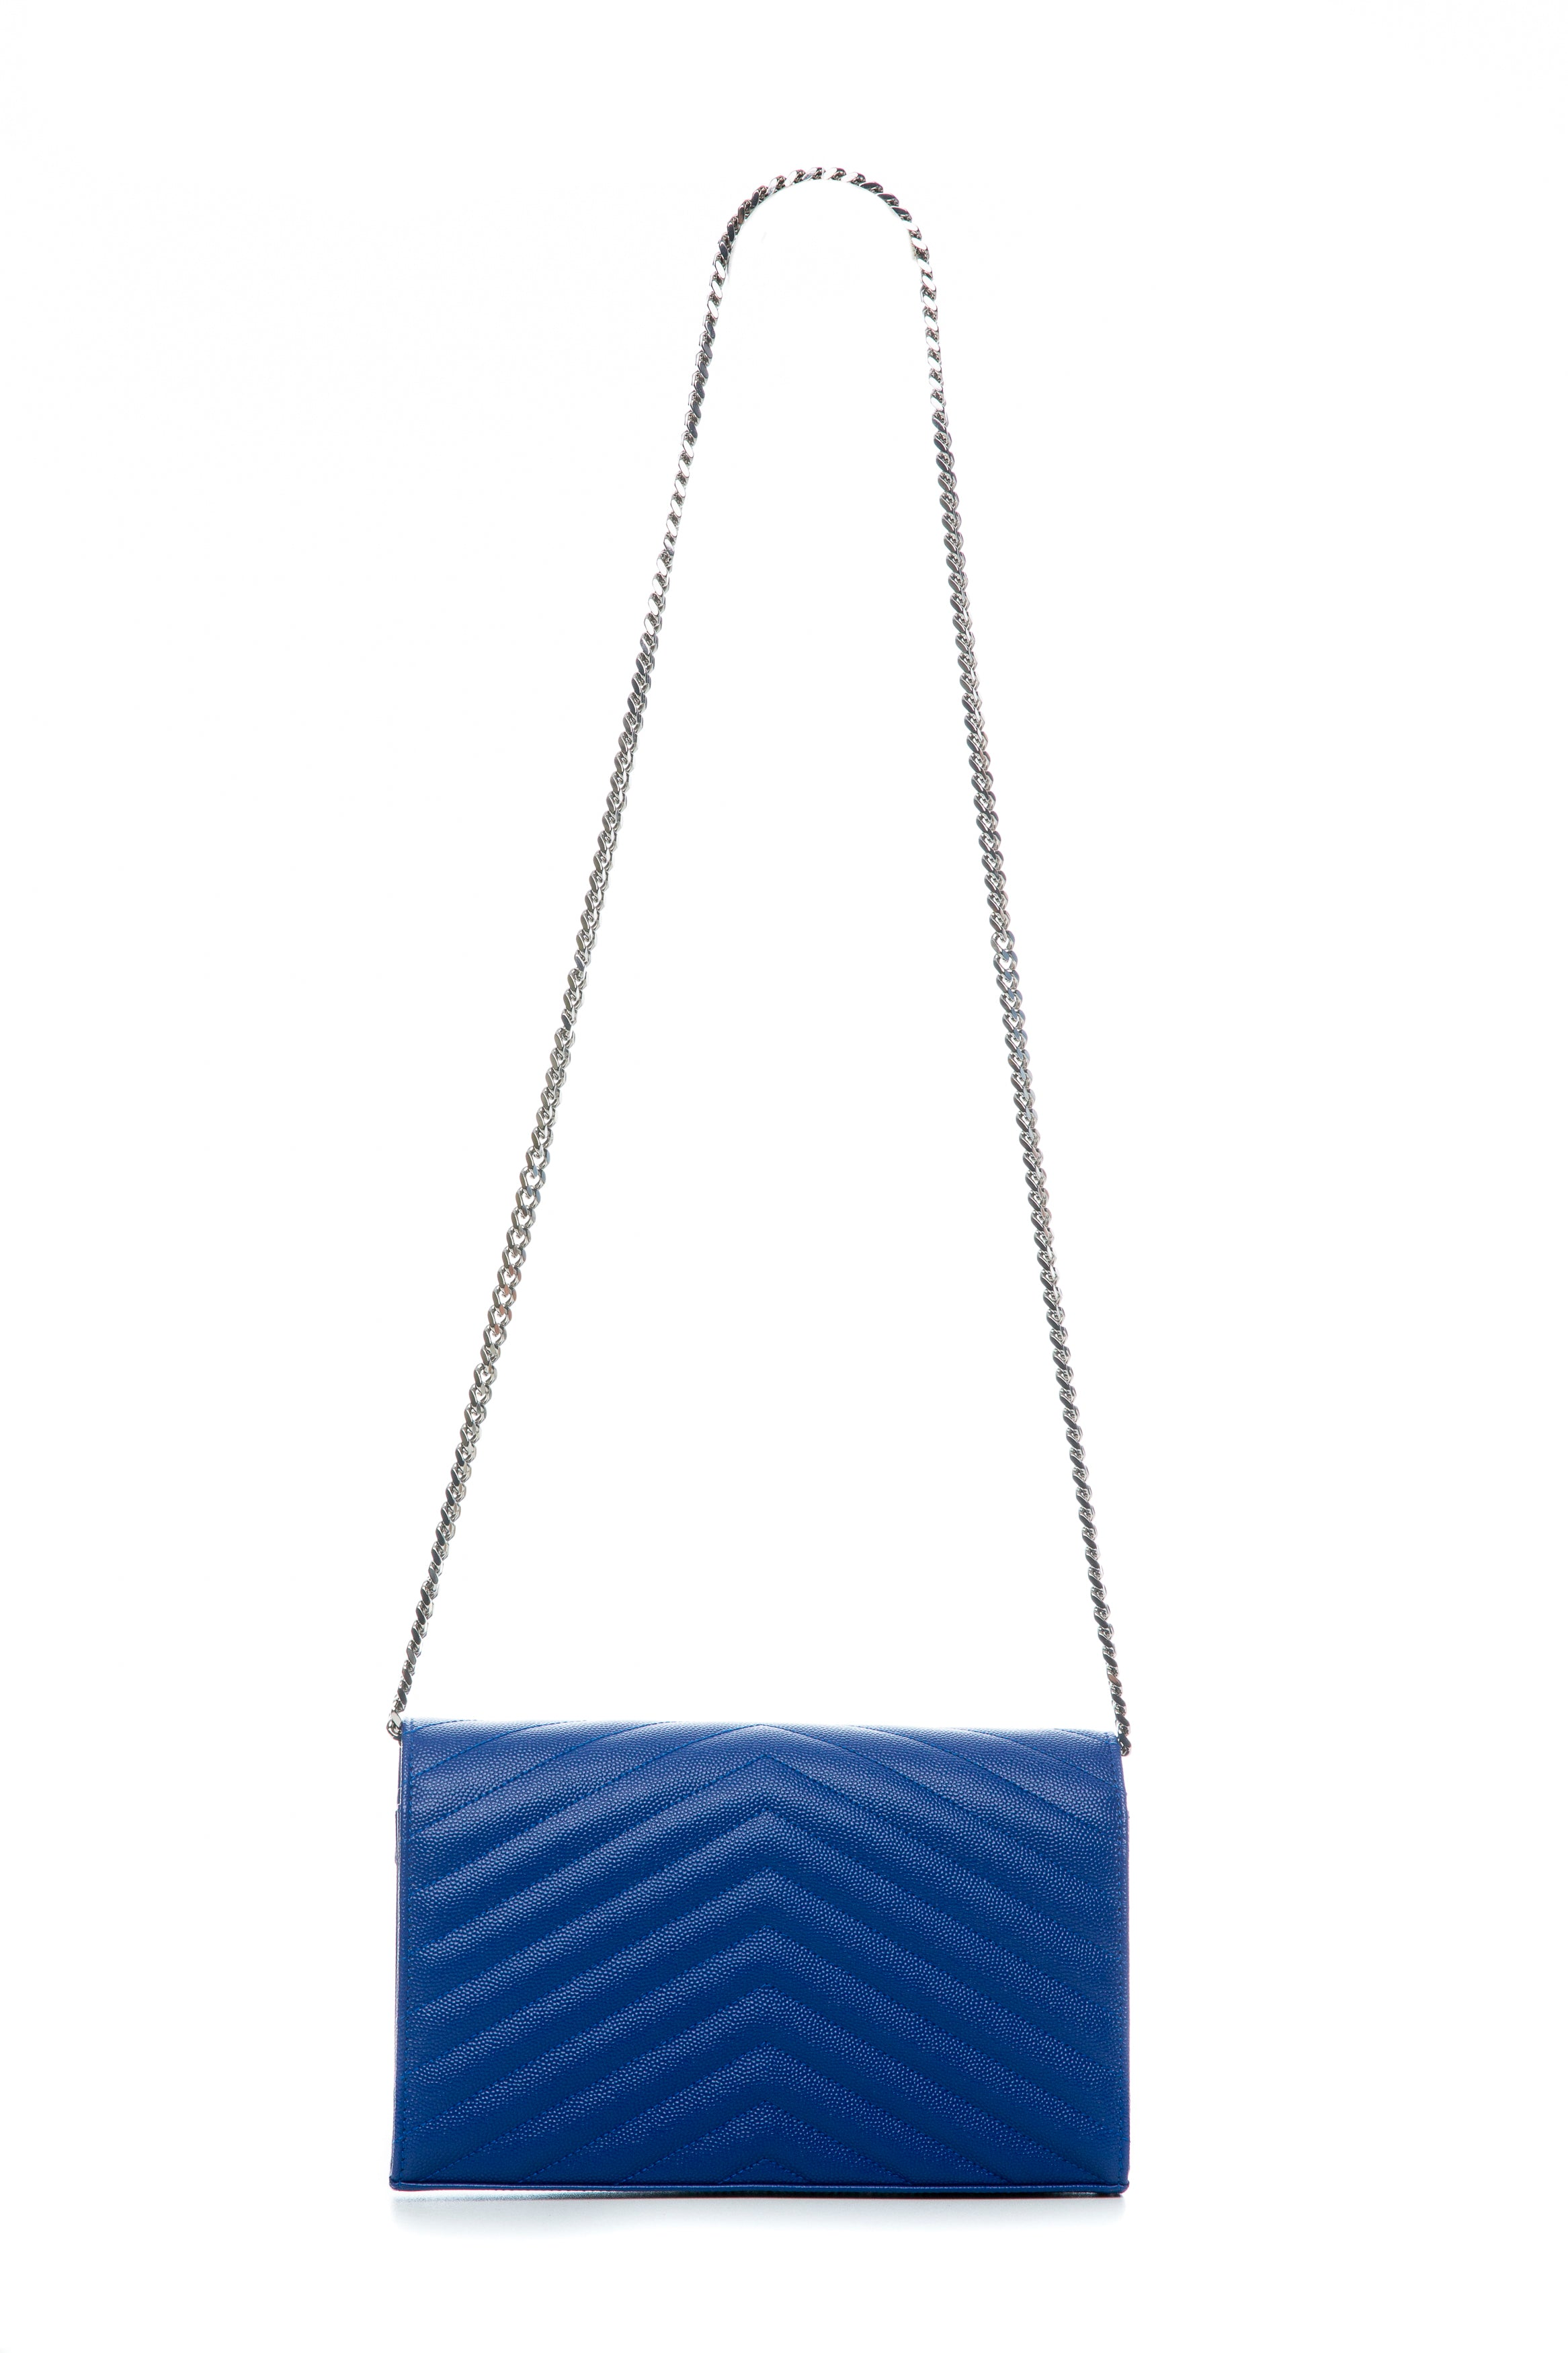 CHAIN WALLET BAG COBALT BLUE